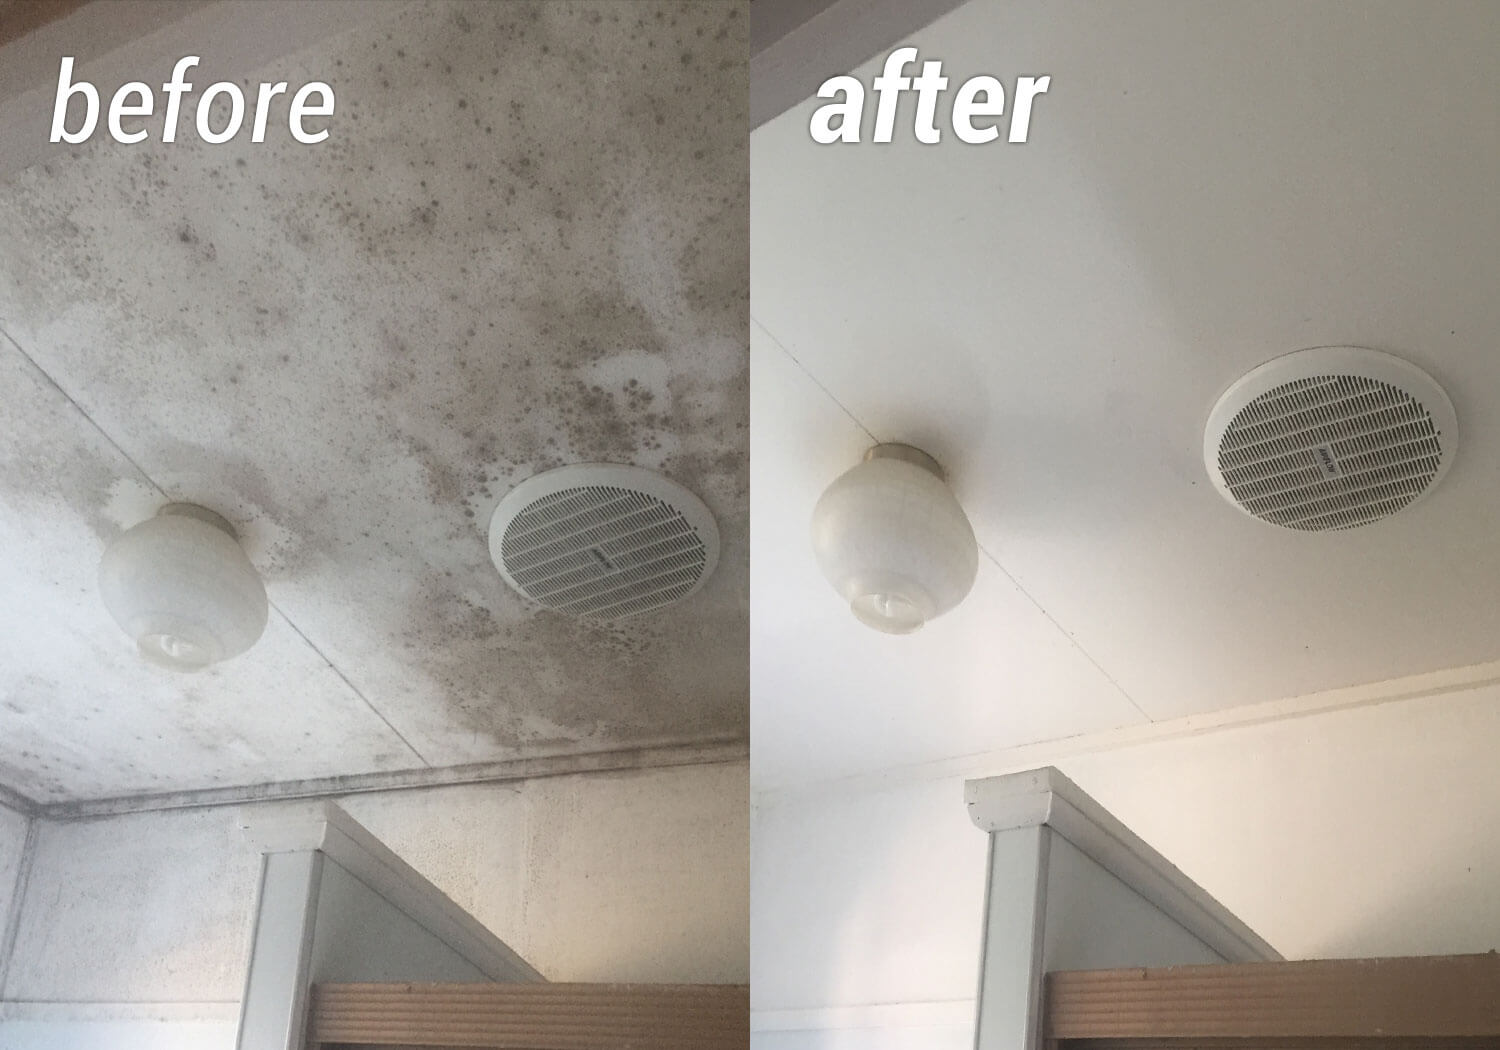 How to clean mold from ceiling blog avie for How to clean mold off bathroom walls and ceiling